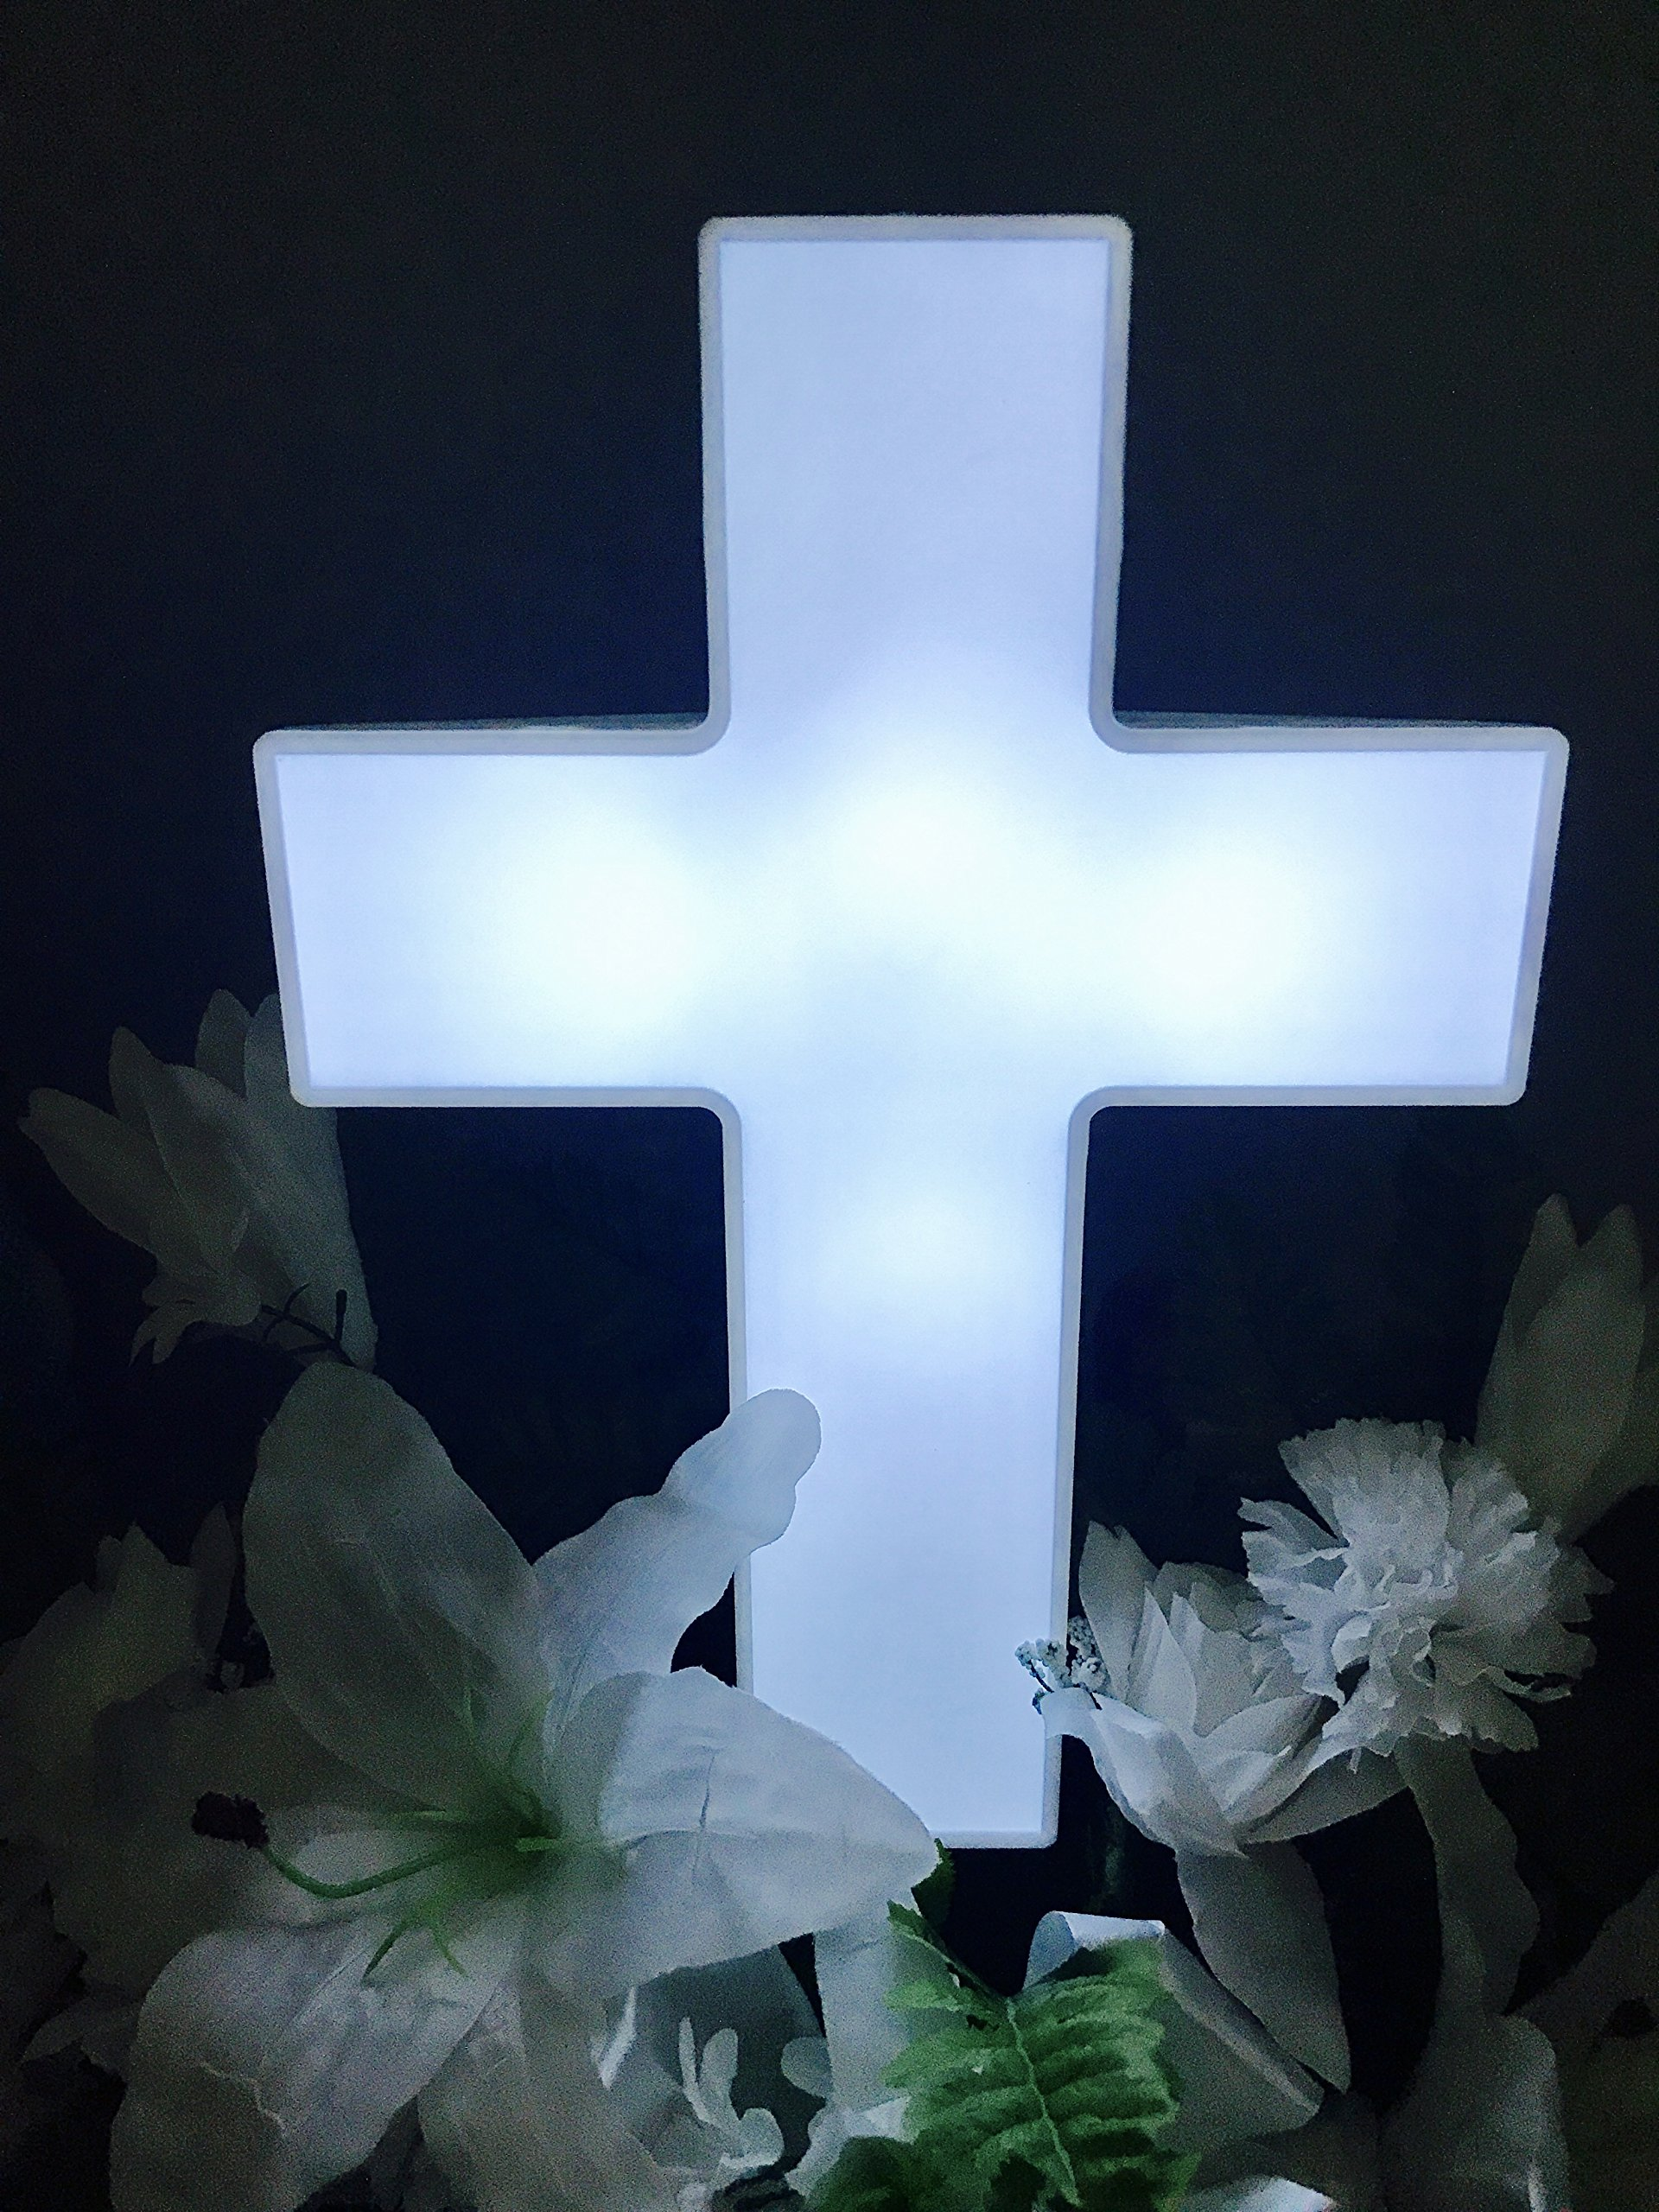 Eternal Light Cross Solar Lighted Cross For Cemetery And Grave